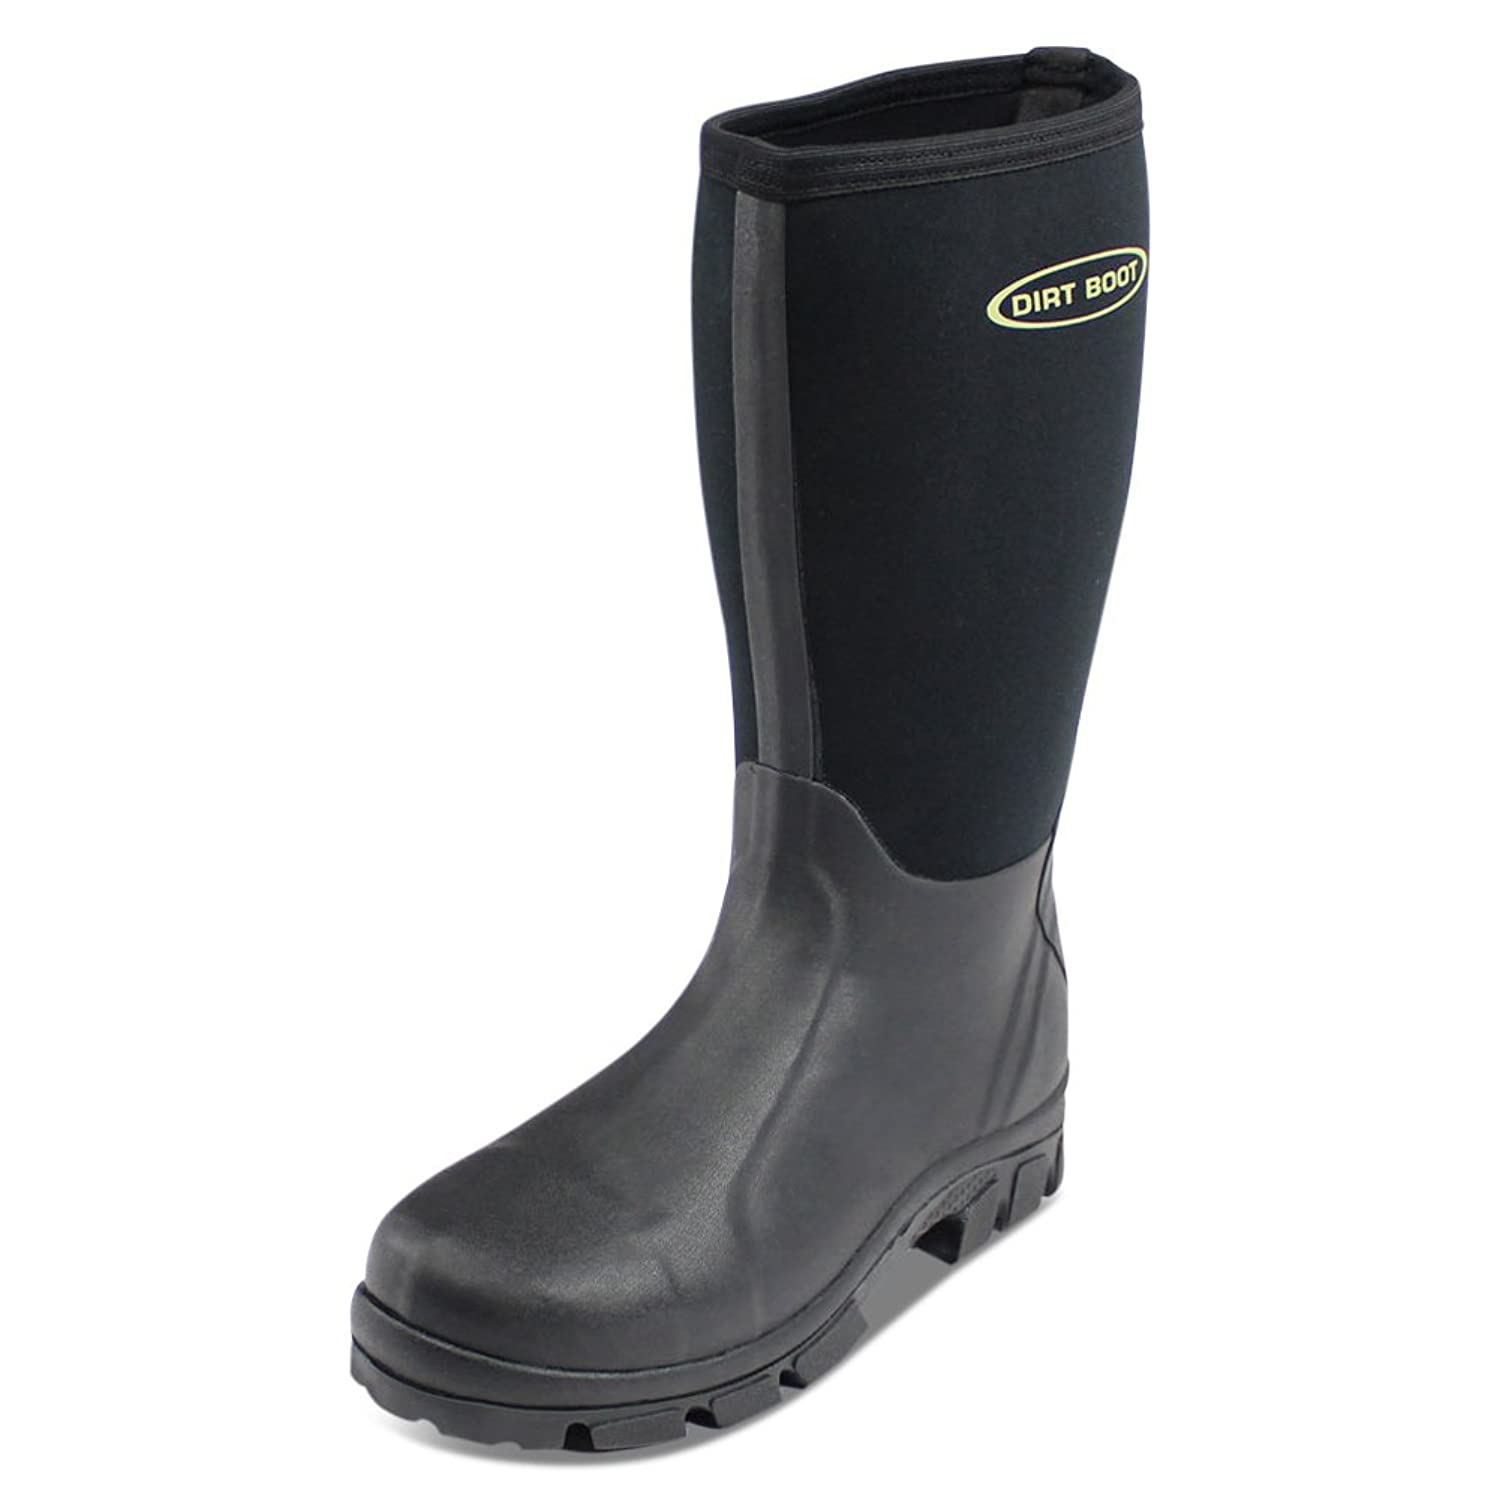 DIRT BOOT NEOPRENE WELLINGTON MUCK BOOTS: Amazon.co.uk: Sports ...